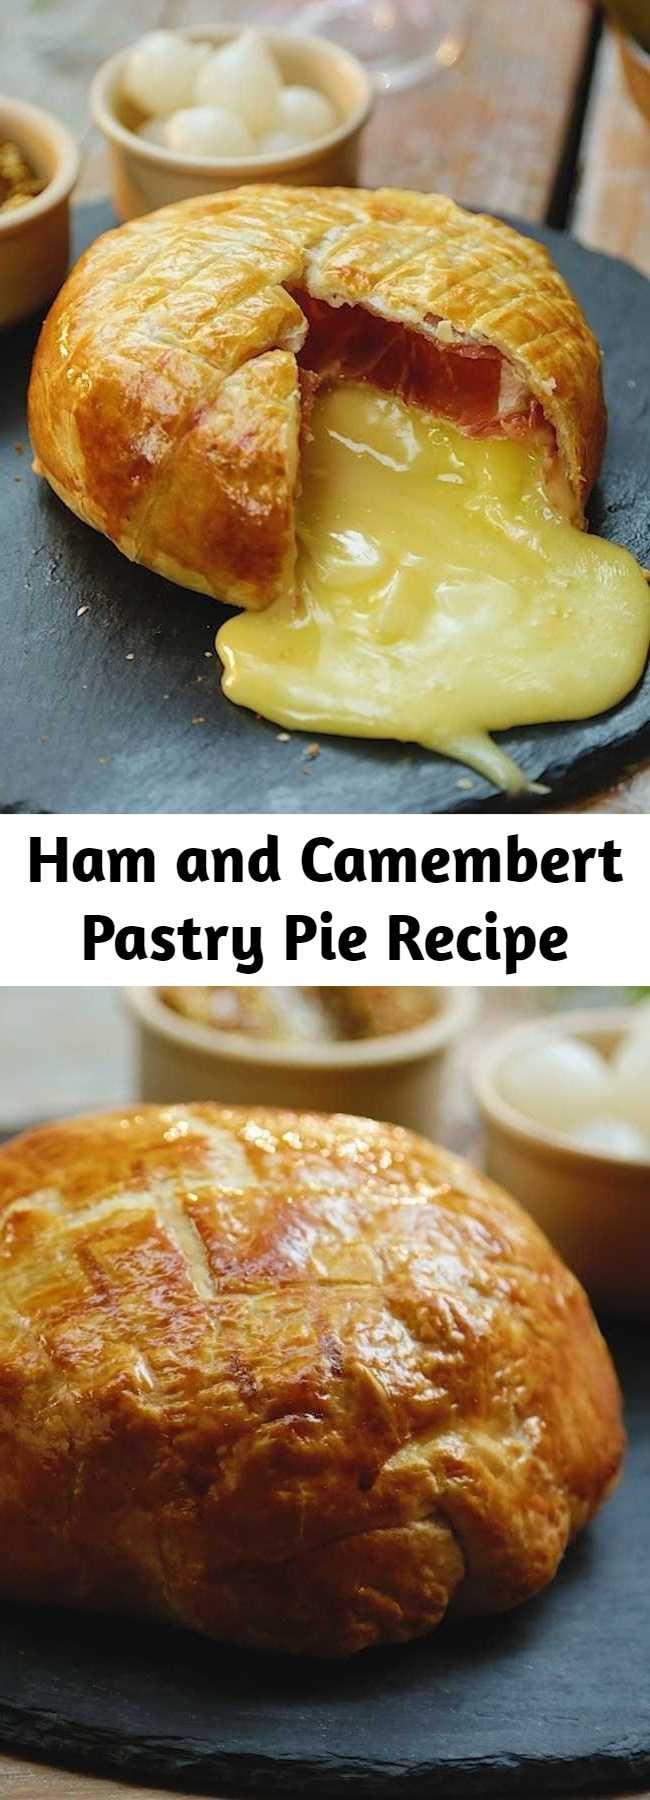 Ham and Camembert Pastry Pie Recipe - This ham and pastry pie is the perfect cheesy dish for any cheese lover!